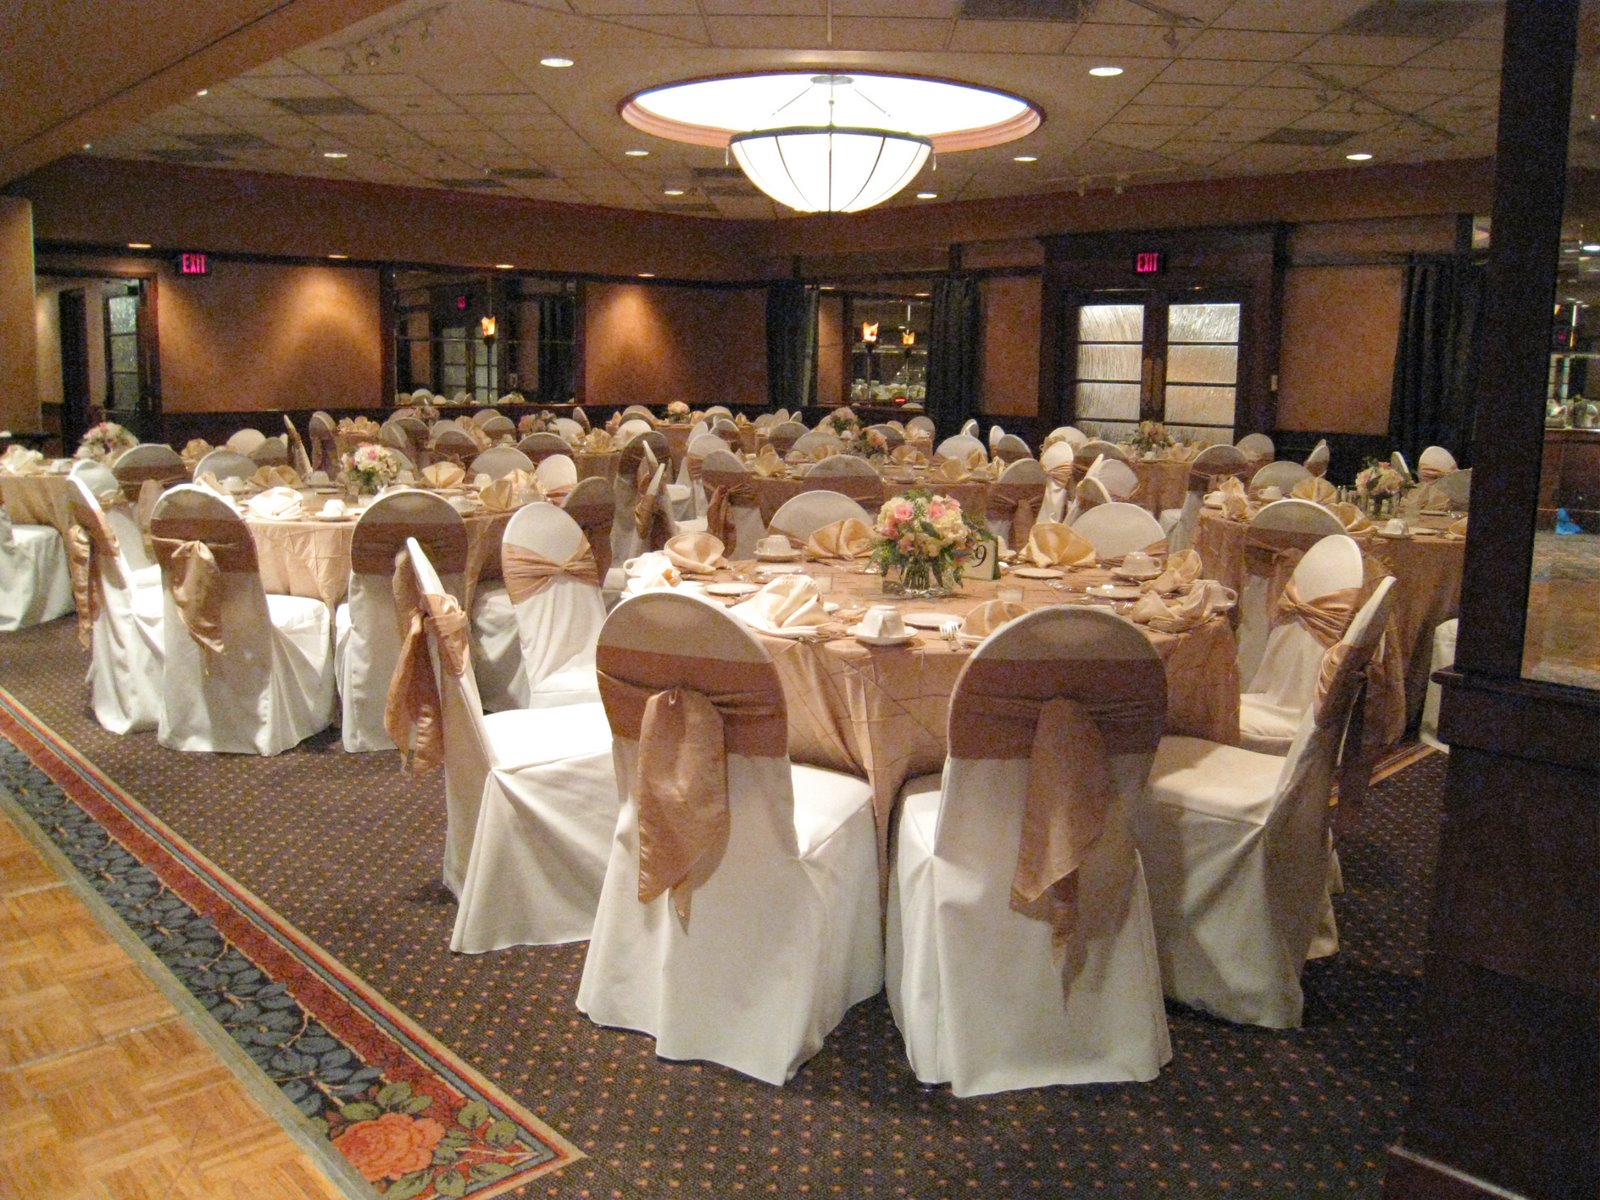 Ivory Chair Covers With Gold Sash Hanging Homestore And More Project Wedding On Pinterest 217 Pins